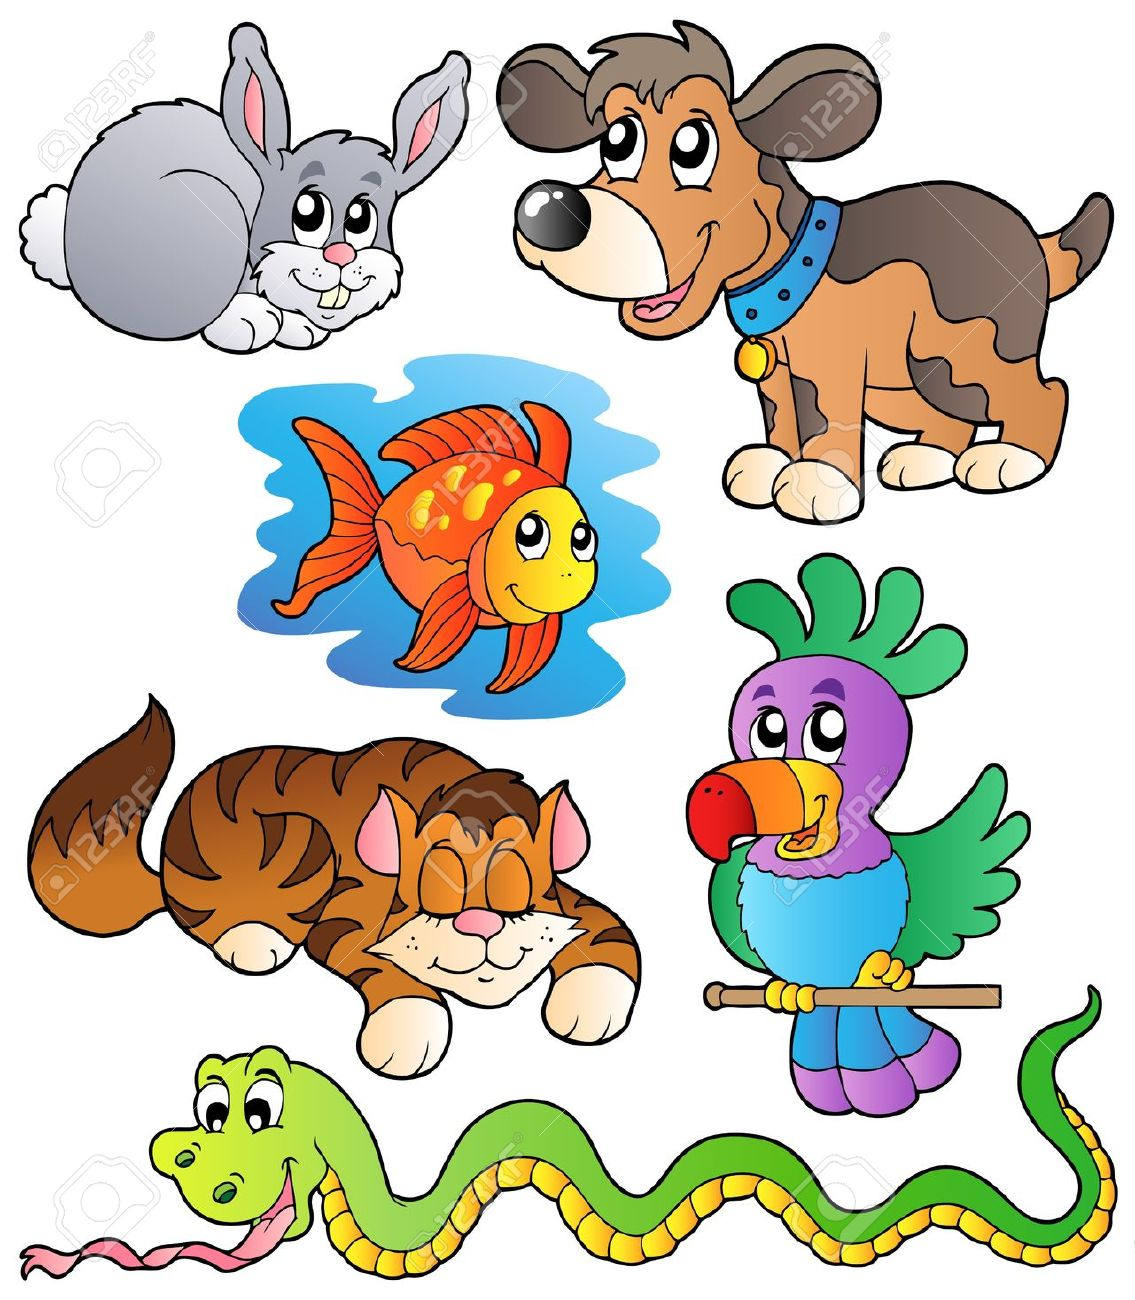 Pet clipart together Clipart Panda Pet Clipart pet%20clipart